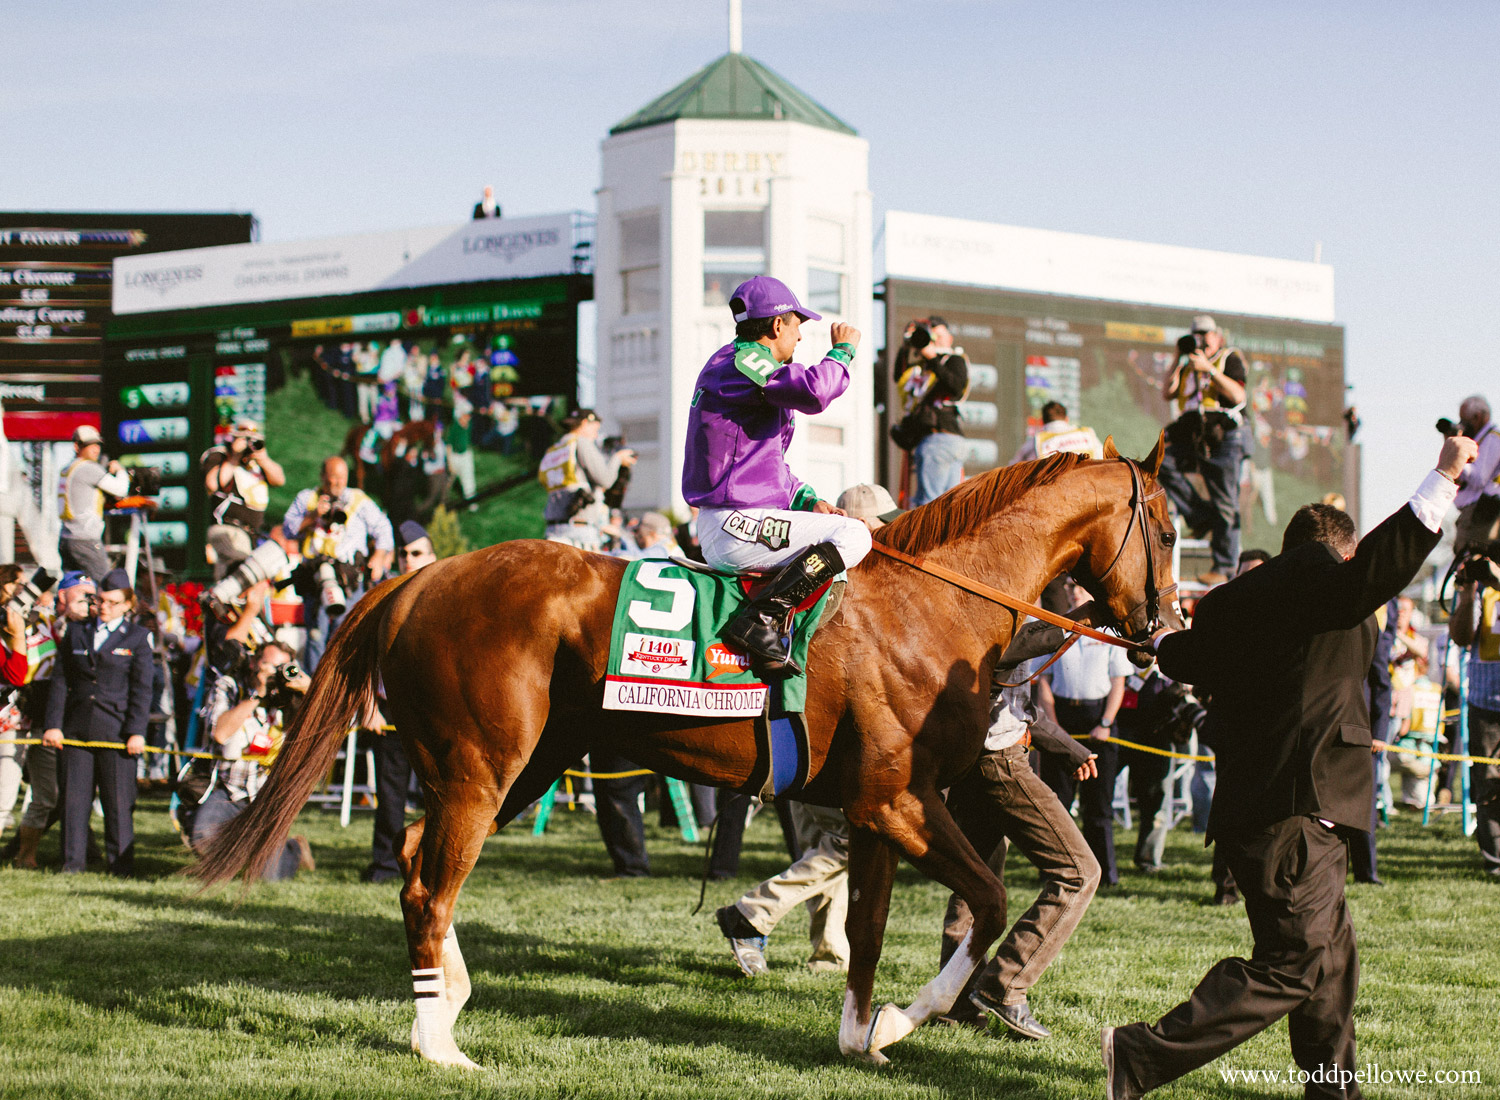 83-kentucky-derby-140-2014-405.jpg